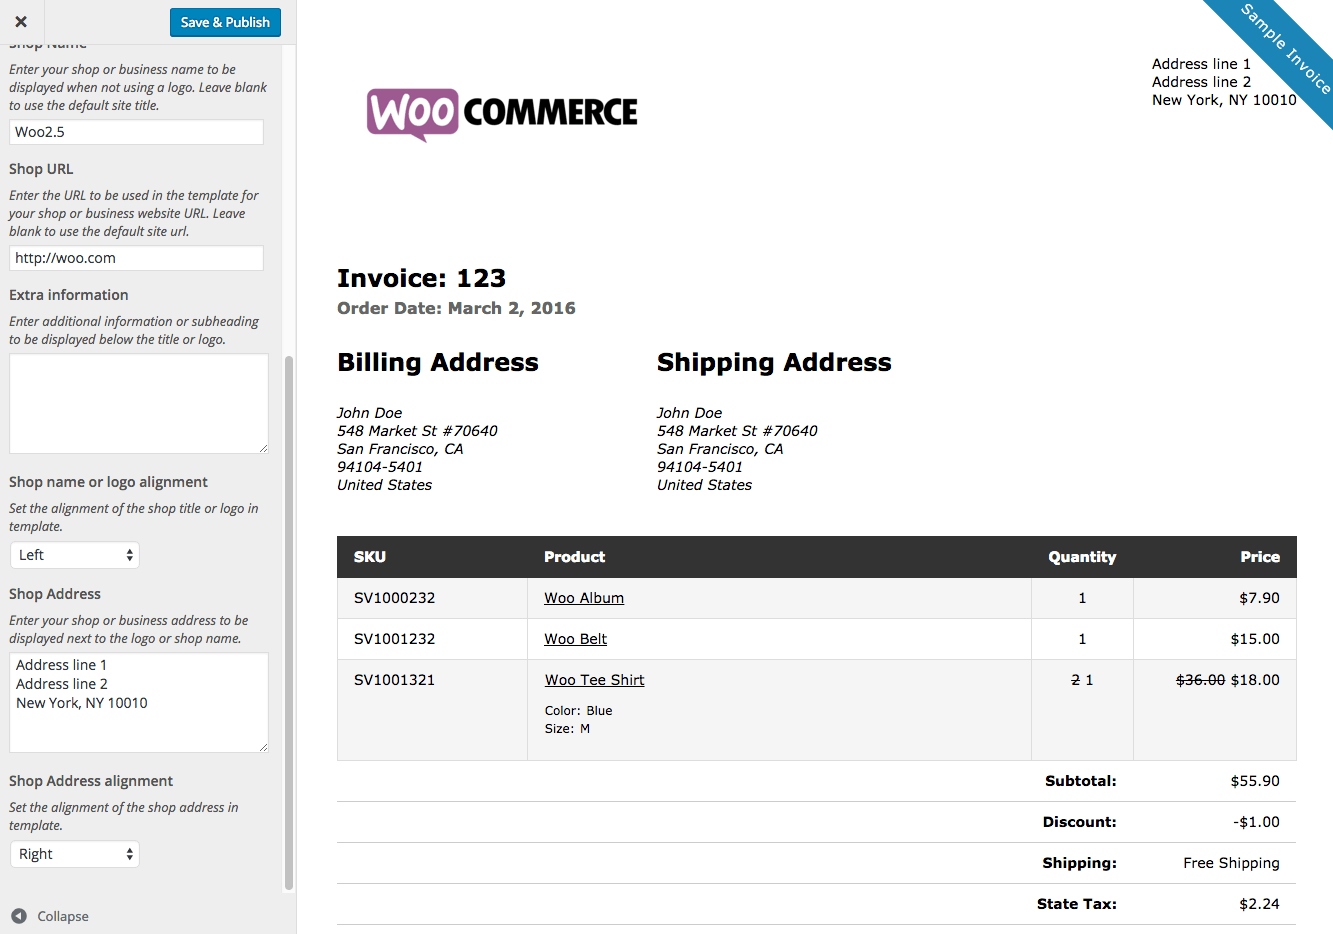 Modaoxus  Marvelous Woocommerce Print Invoices Amp Packing Lists  Woocommerce Docs With Great Woocommerce Print Invoices  Packing Lists Customizer With Captivating Hb Receipt Number Also Usps Tracking Number On Receipt In Addition Email Receipts To Concur And Pizza Hut Store Number Receipt As Well As Outlook  Read Receipt Additionally Hertz Receipts From Docswoocommercecom With Modaoxus  Great Woocommerce Print Invoices Amp Packing Lists  Woocommerce Docs With Captivating Woocommerce Print Invoices  Packing Lists Customizer And Marvelous Hb Receipt Number Also Usps Tracking Number On Receipt In Addition Email Receipts To Concur From Docswoocommercecom